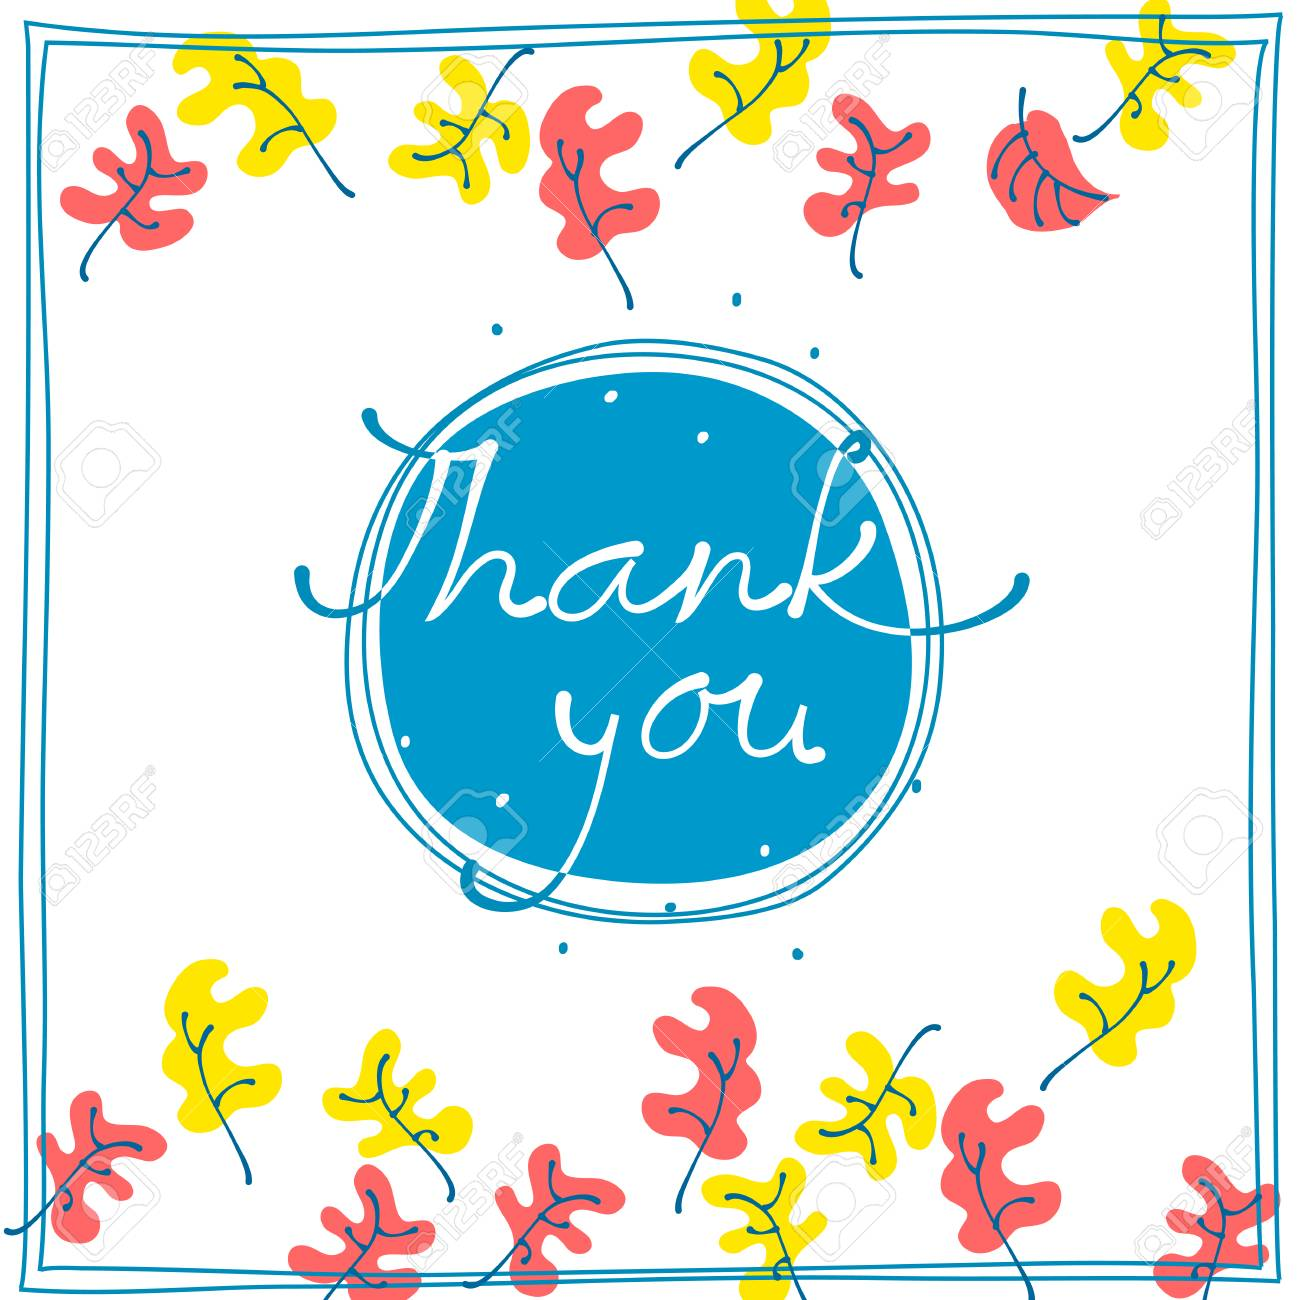 Thank you card design template simple greeting card elegant thank you card design template simple greeting card elegant with falling leaves on blue background kristyandbryce Gallery